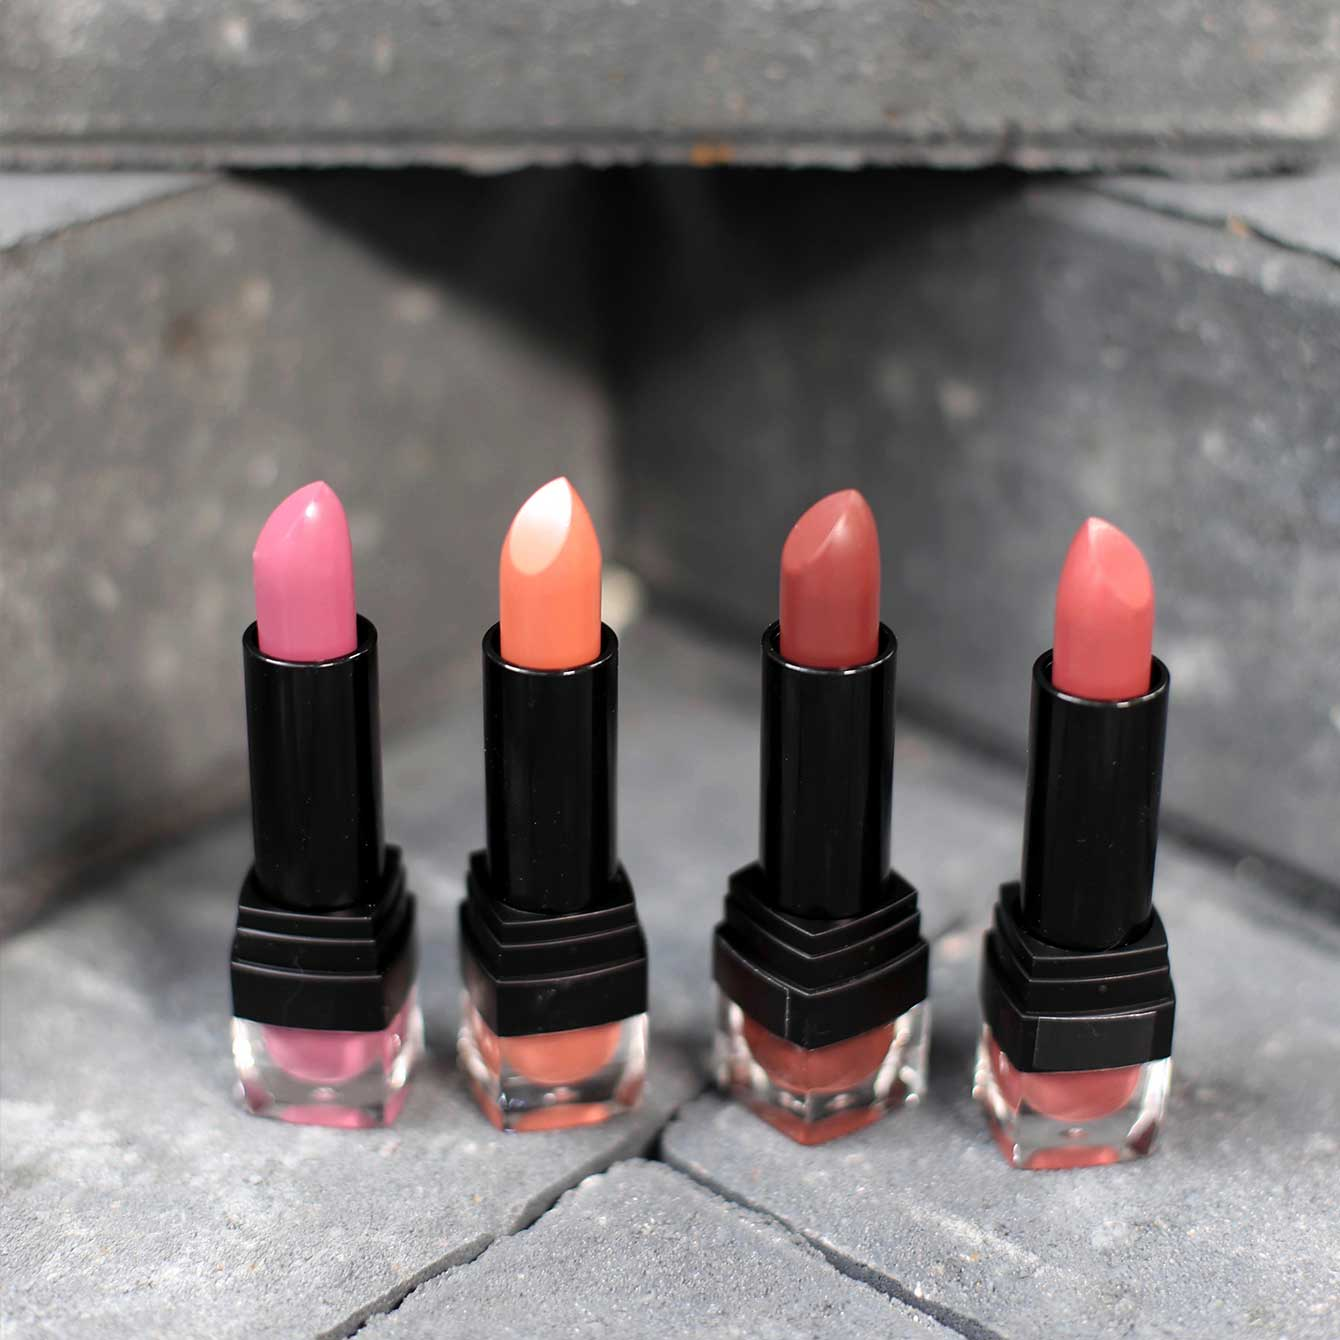 LIP VIP Star Range Sleek Makeup